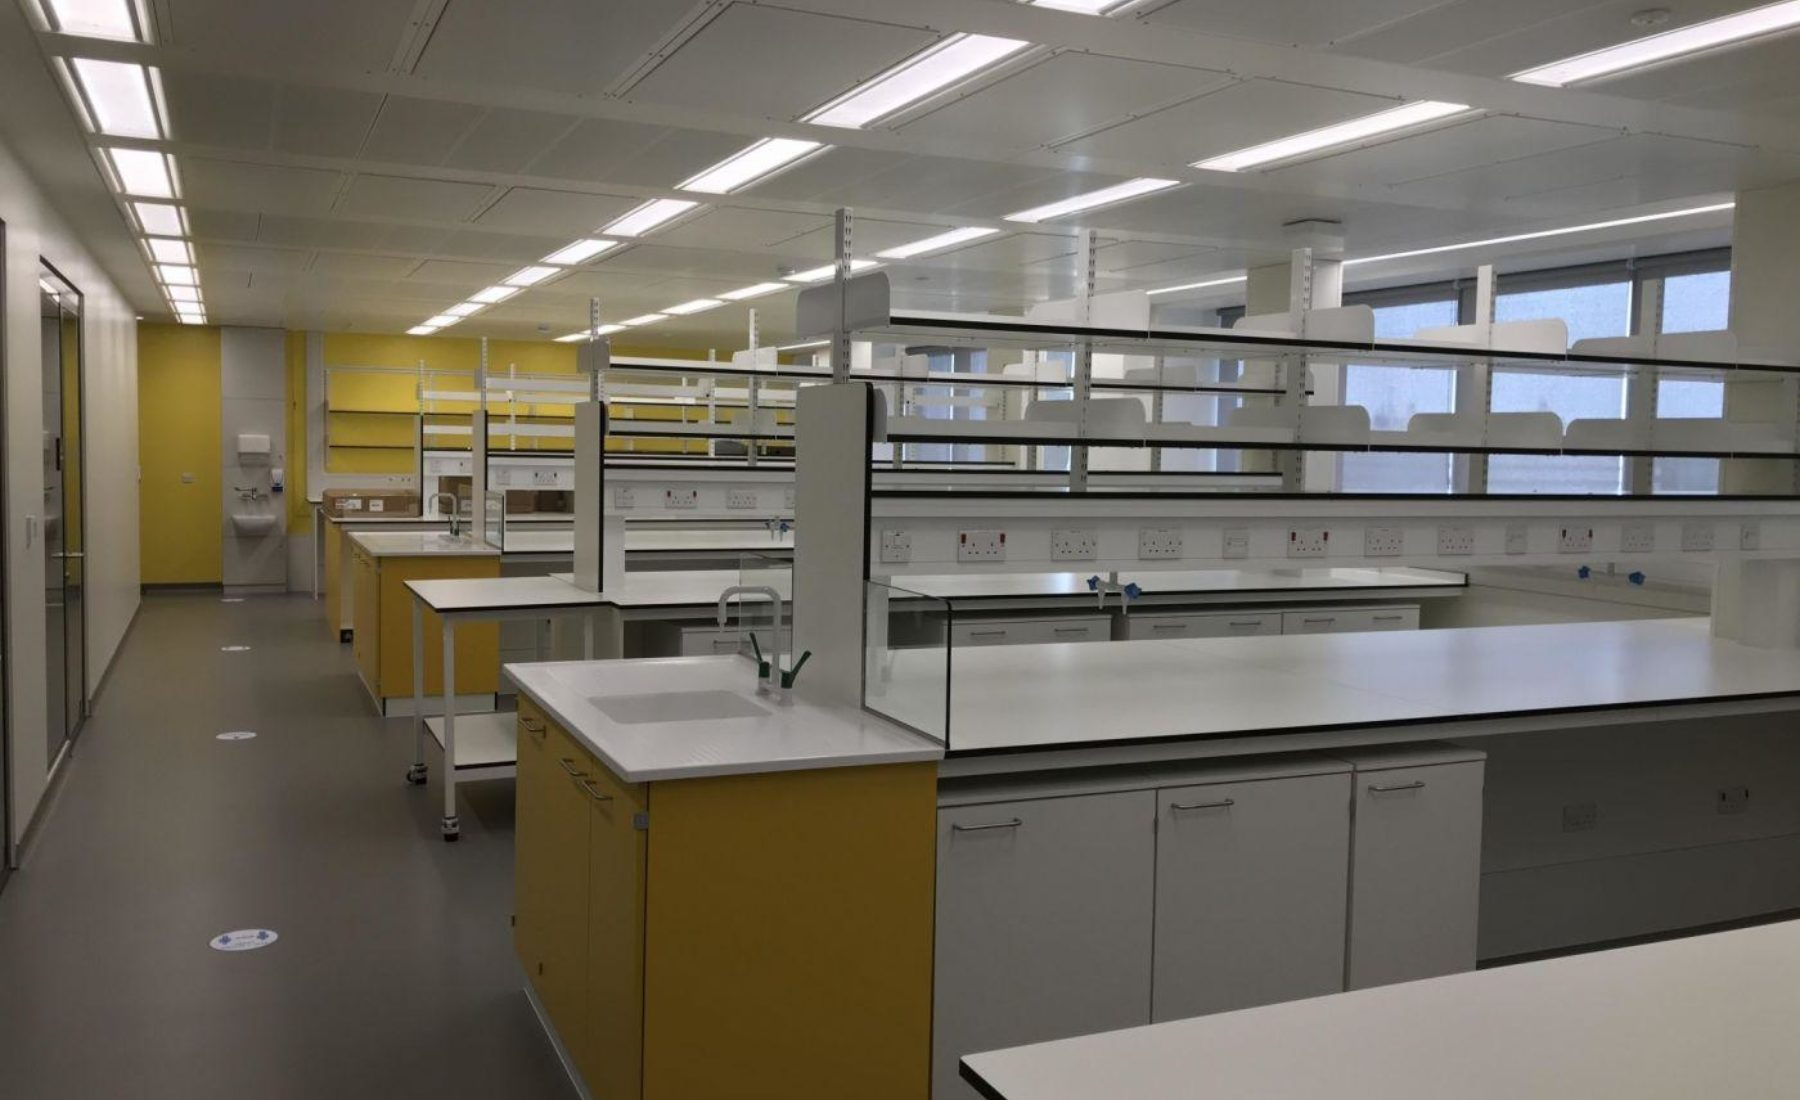 KCL laboratory fit out